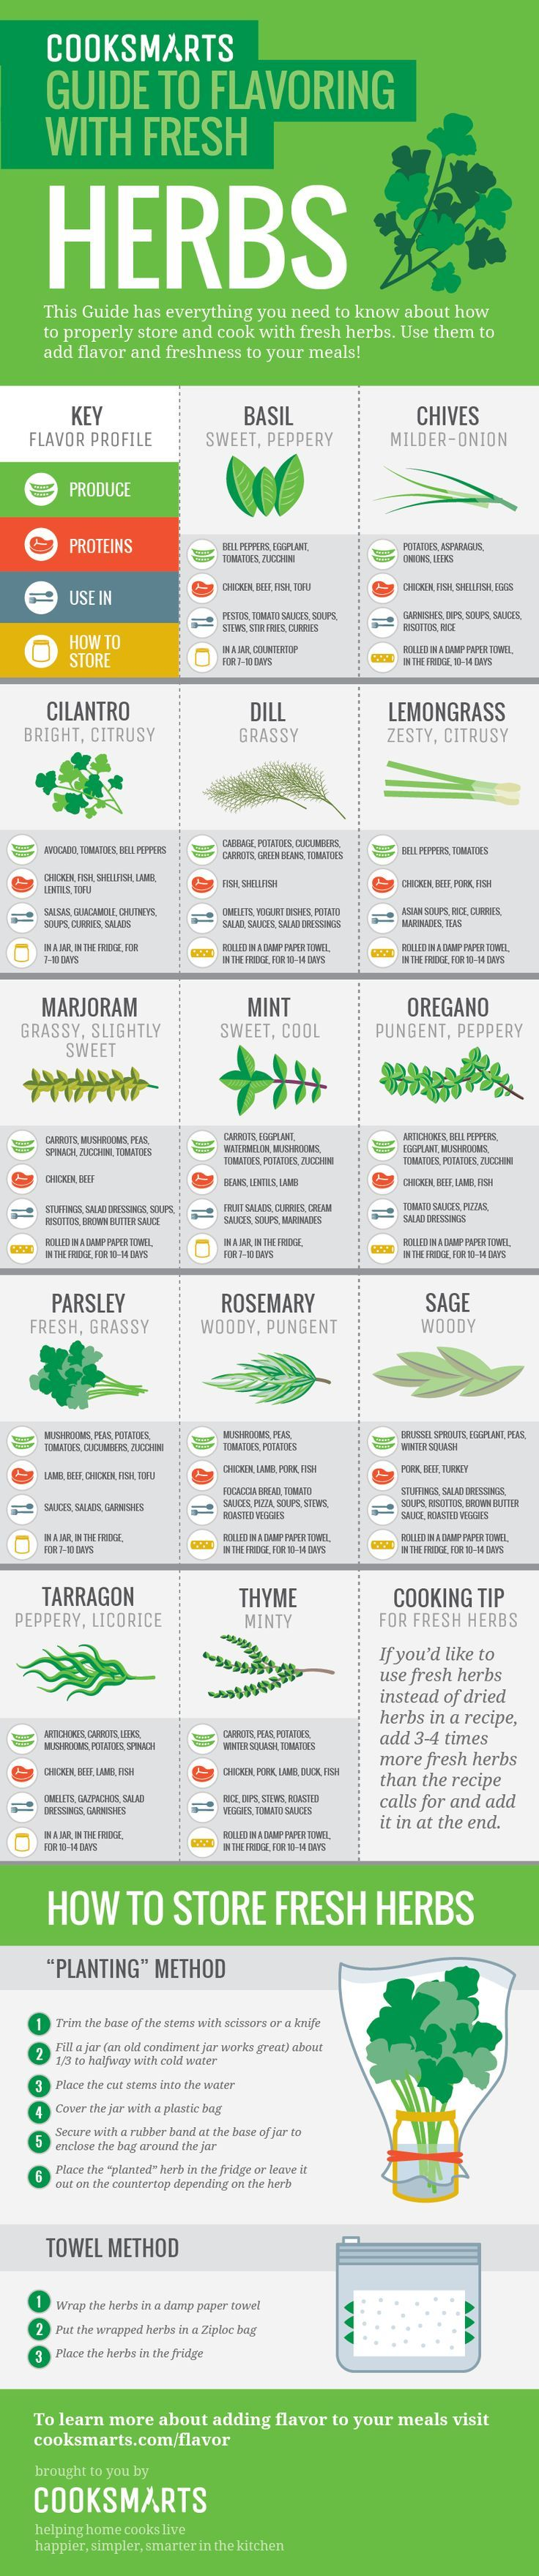 How to properly store and cook with fresh herbs via @CookSmarts #flavor #herbs